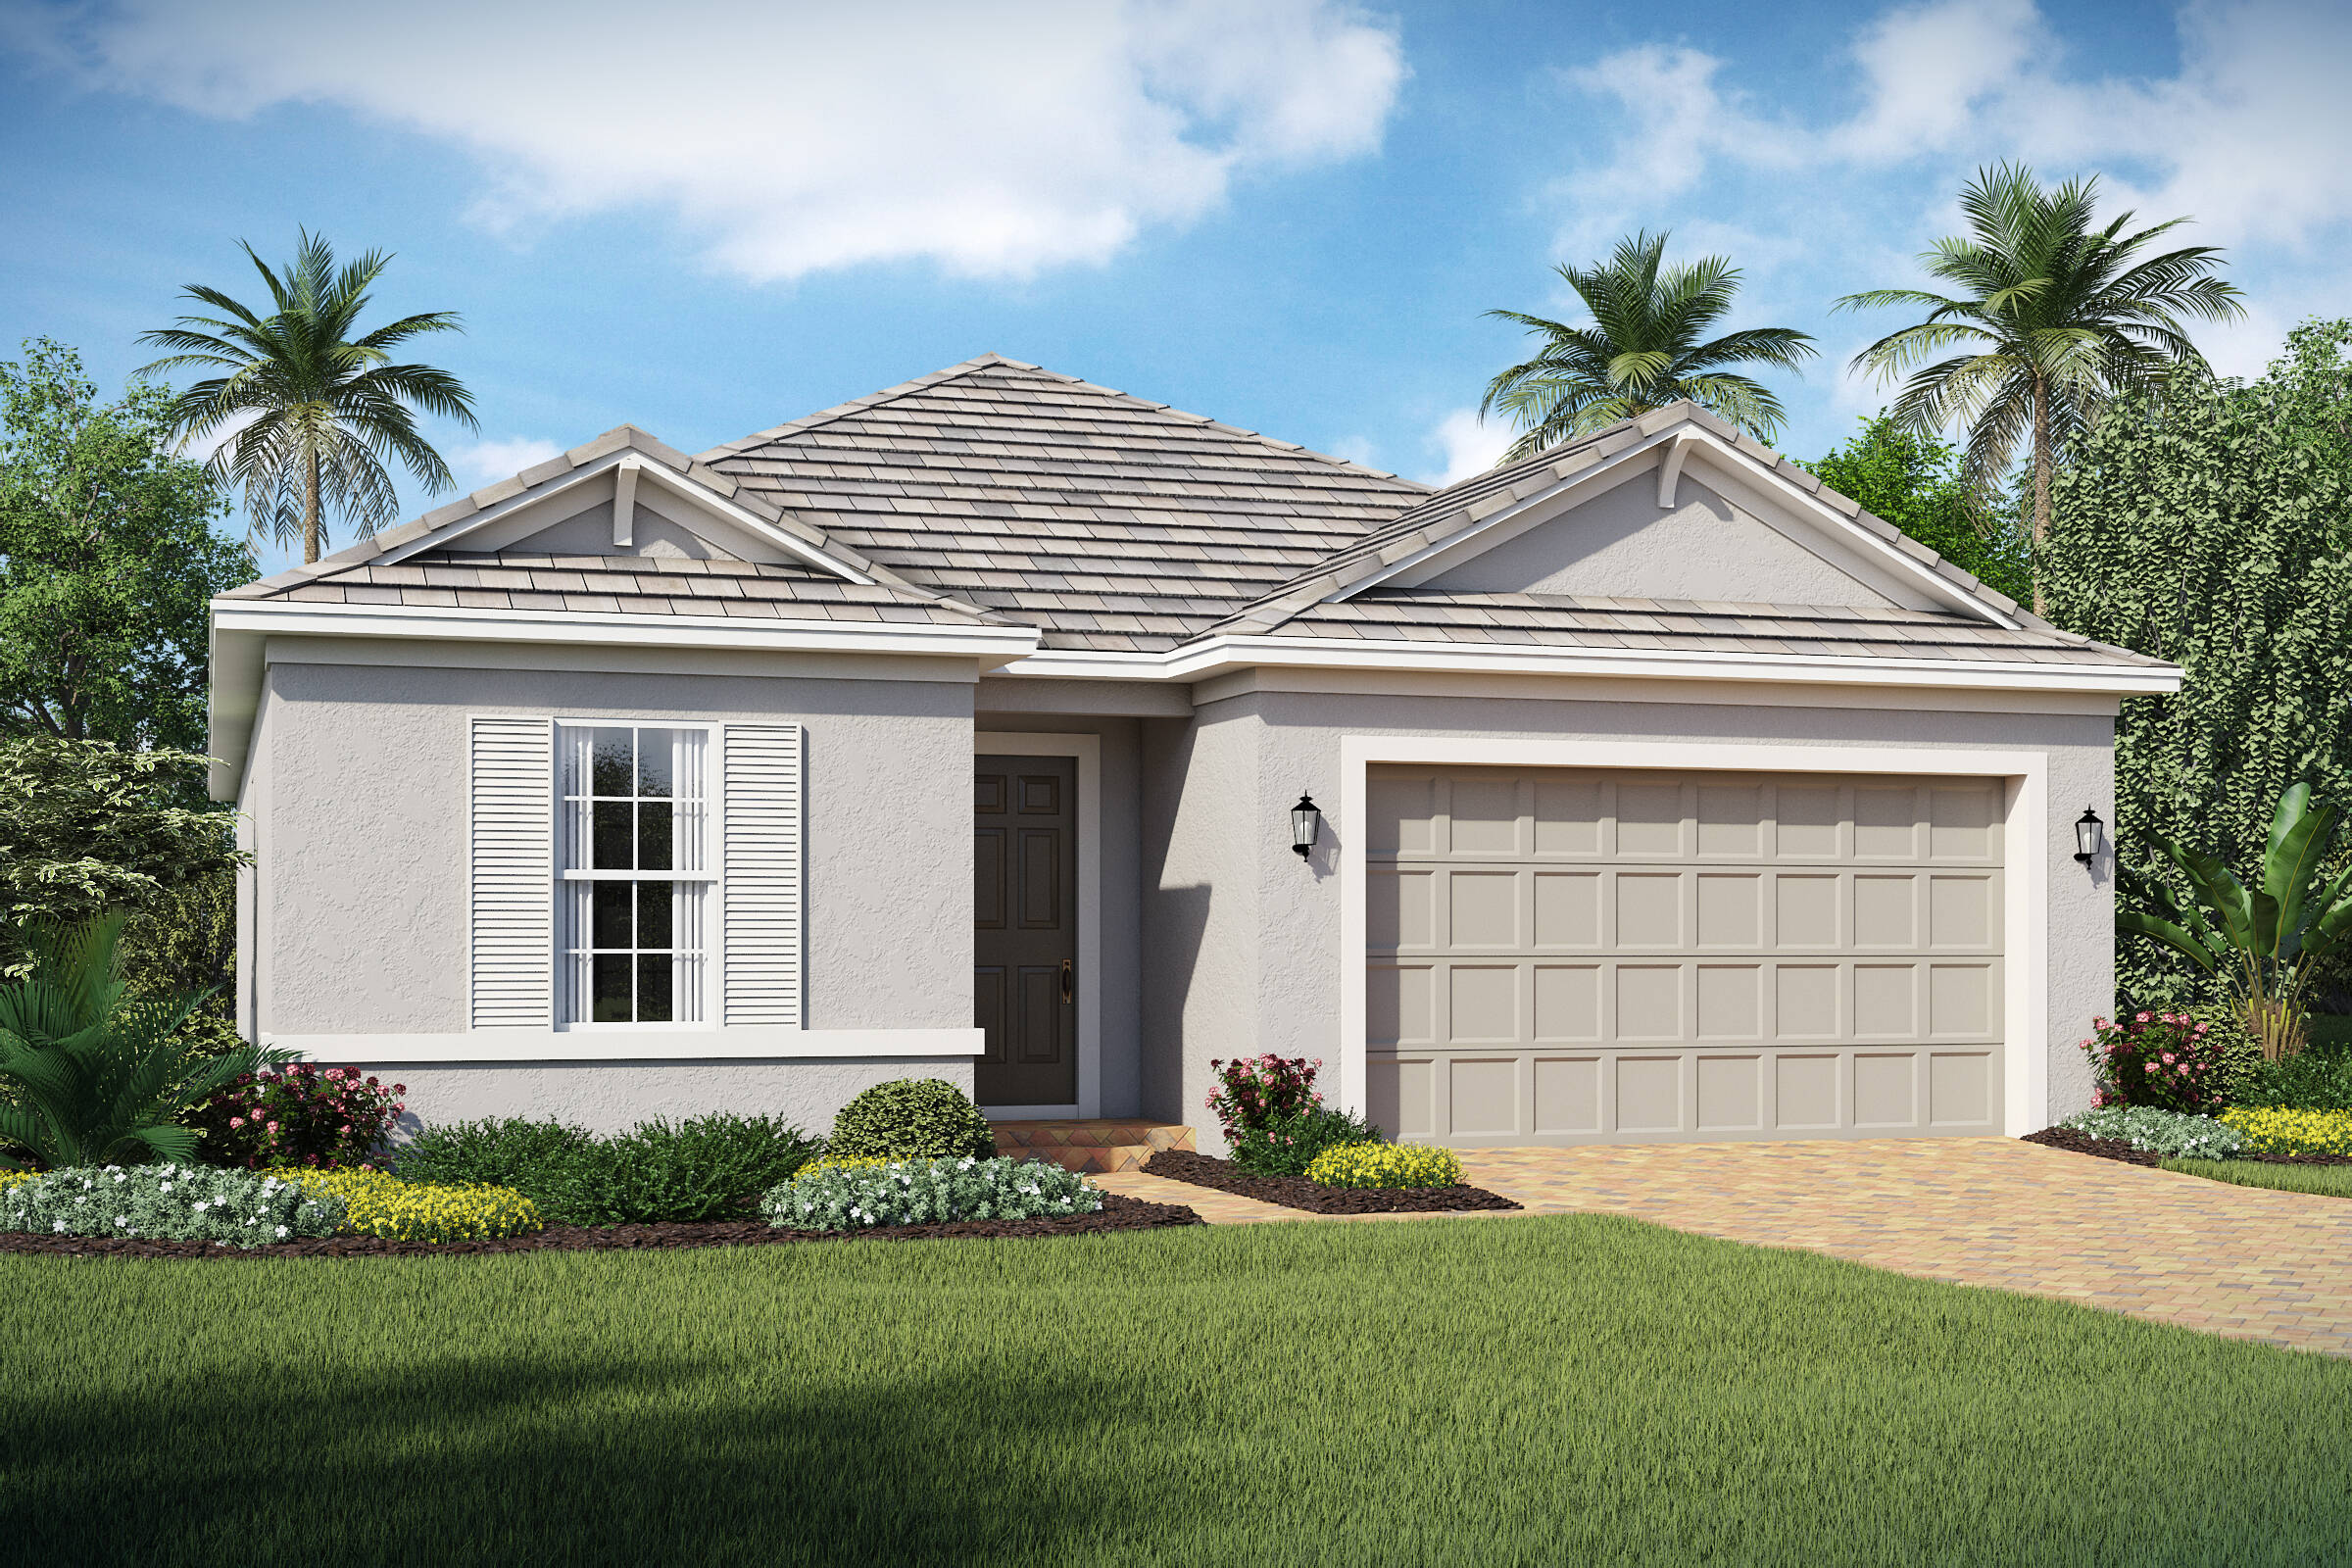 Saint Lucia A exterior lake florence preserve new homes in orlando florida